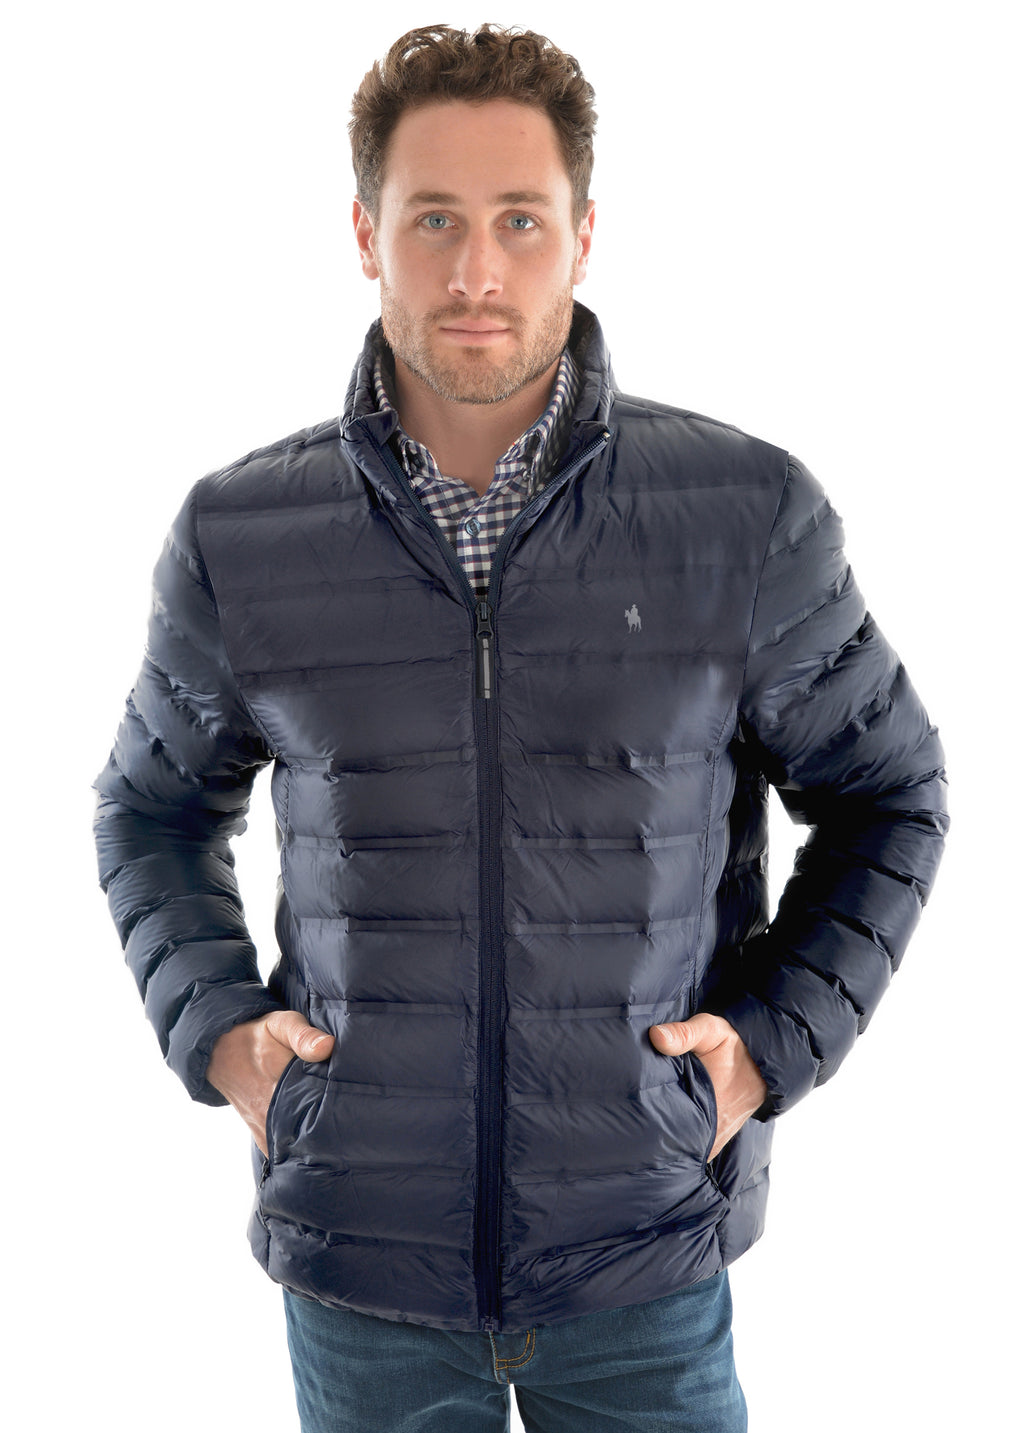 Mens New Oberon Light Weight Down Jacket